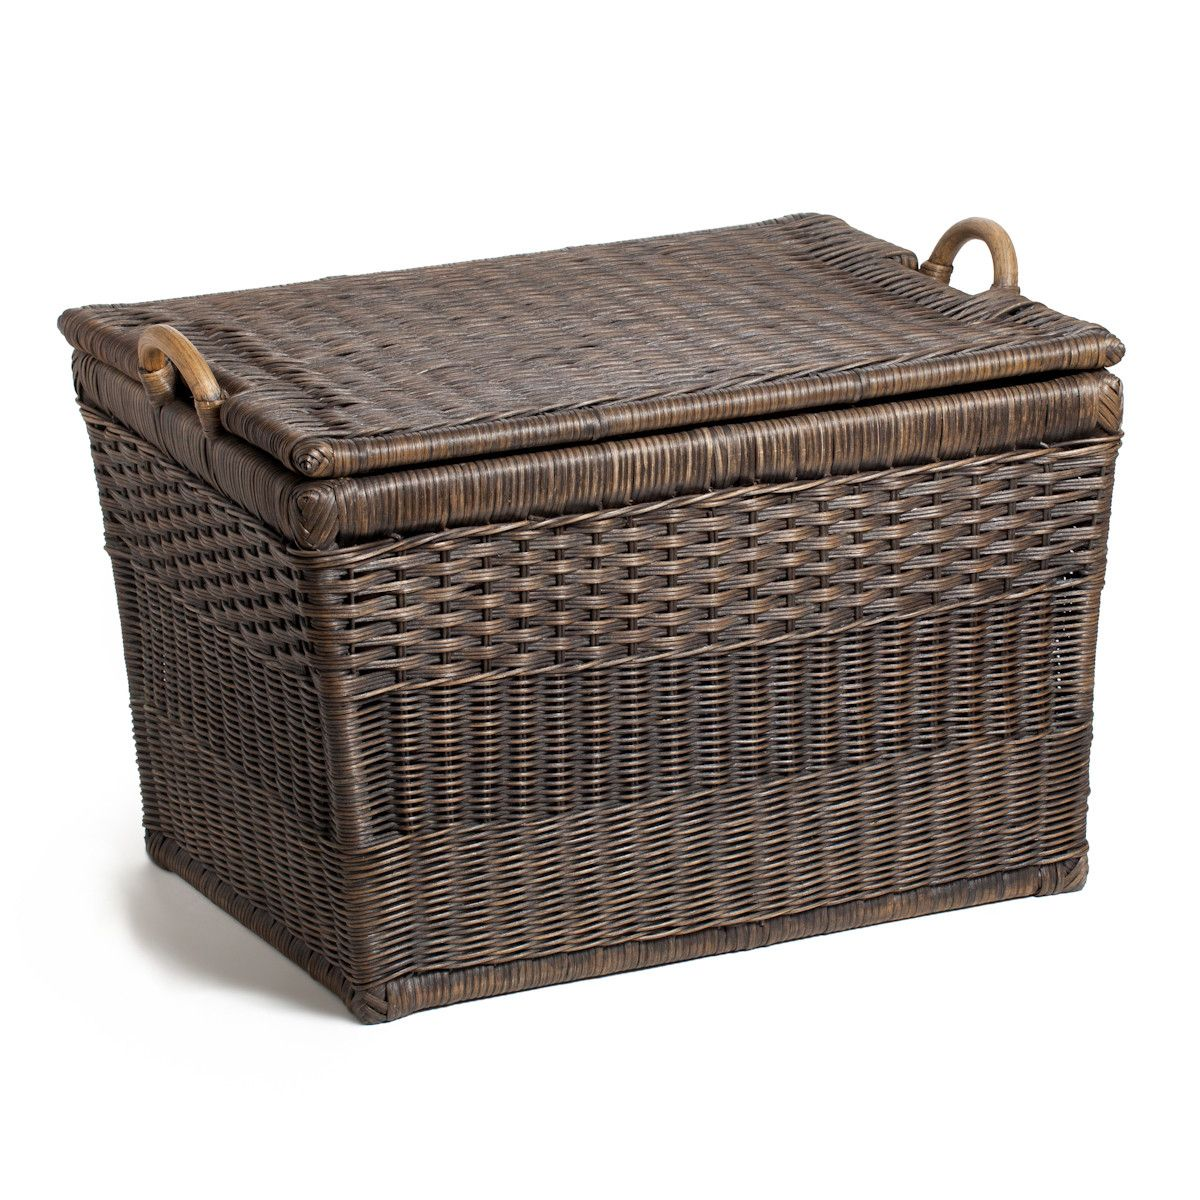 boxes from storage image room offering you astonishing with dk endearing furniture made in brown ideas decorative supple fabric extra box lids decor